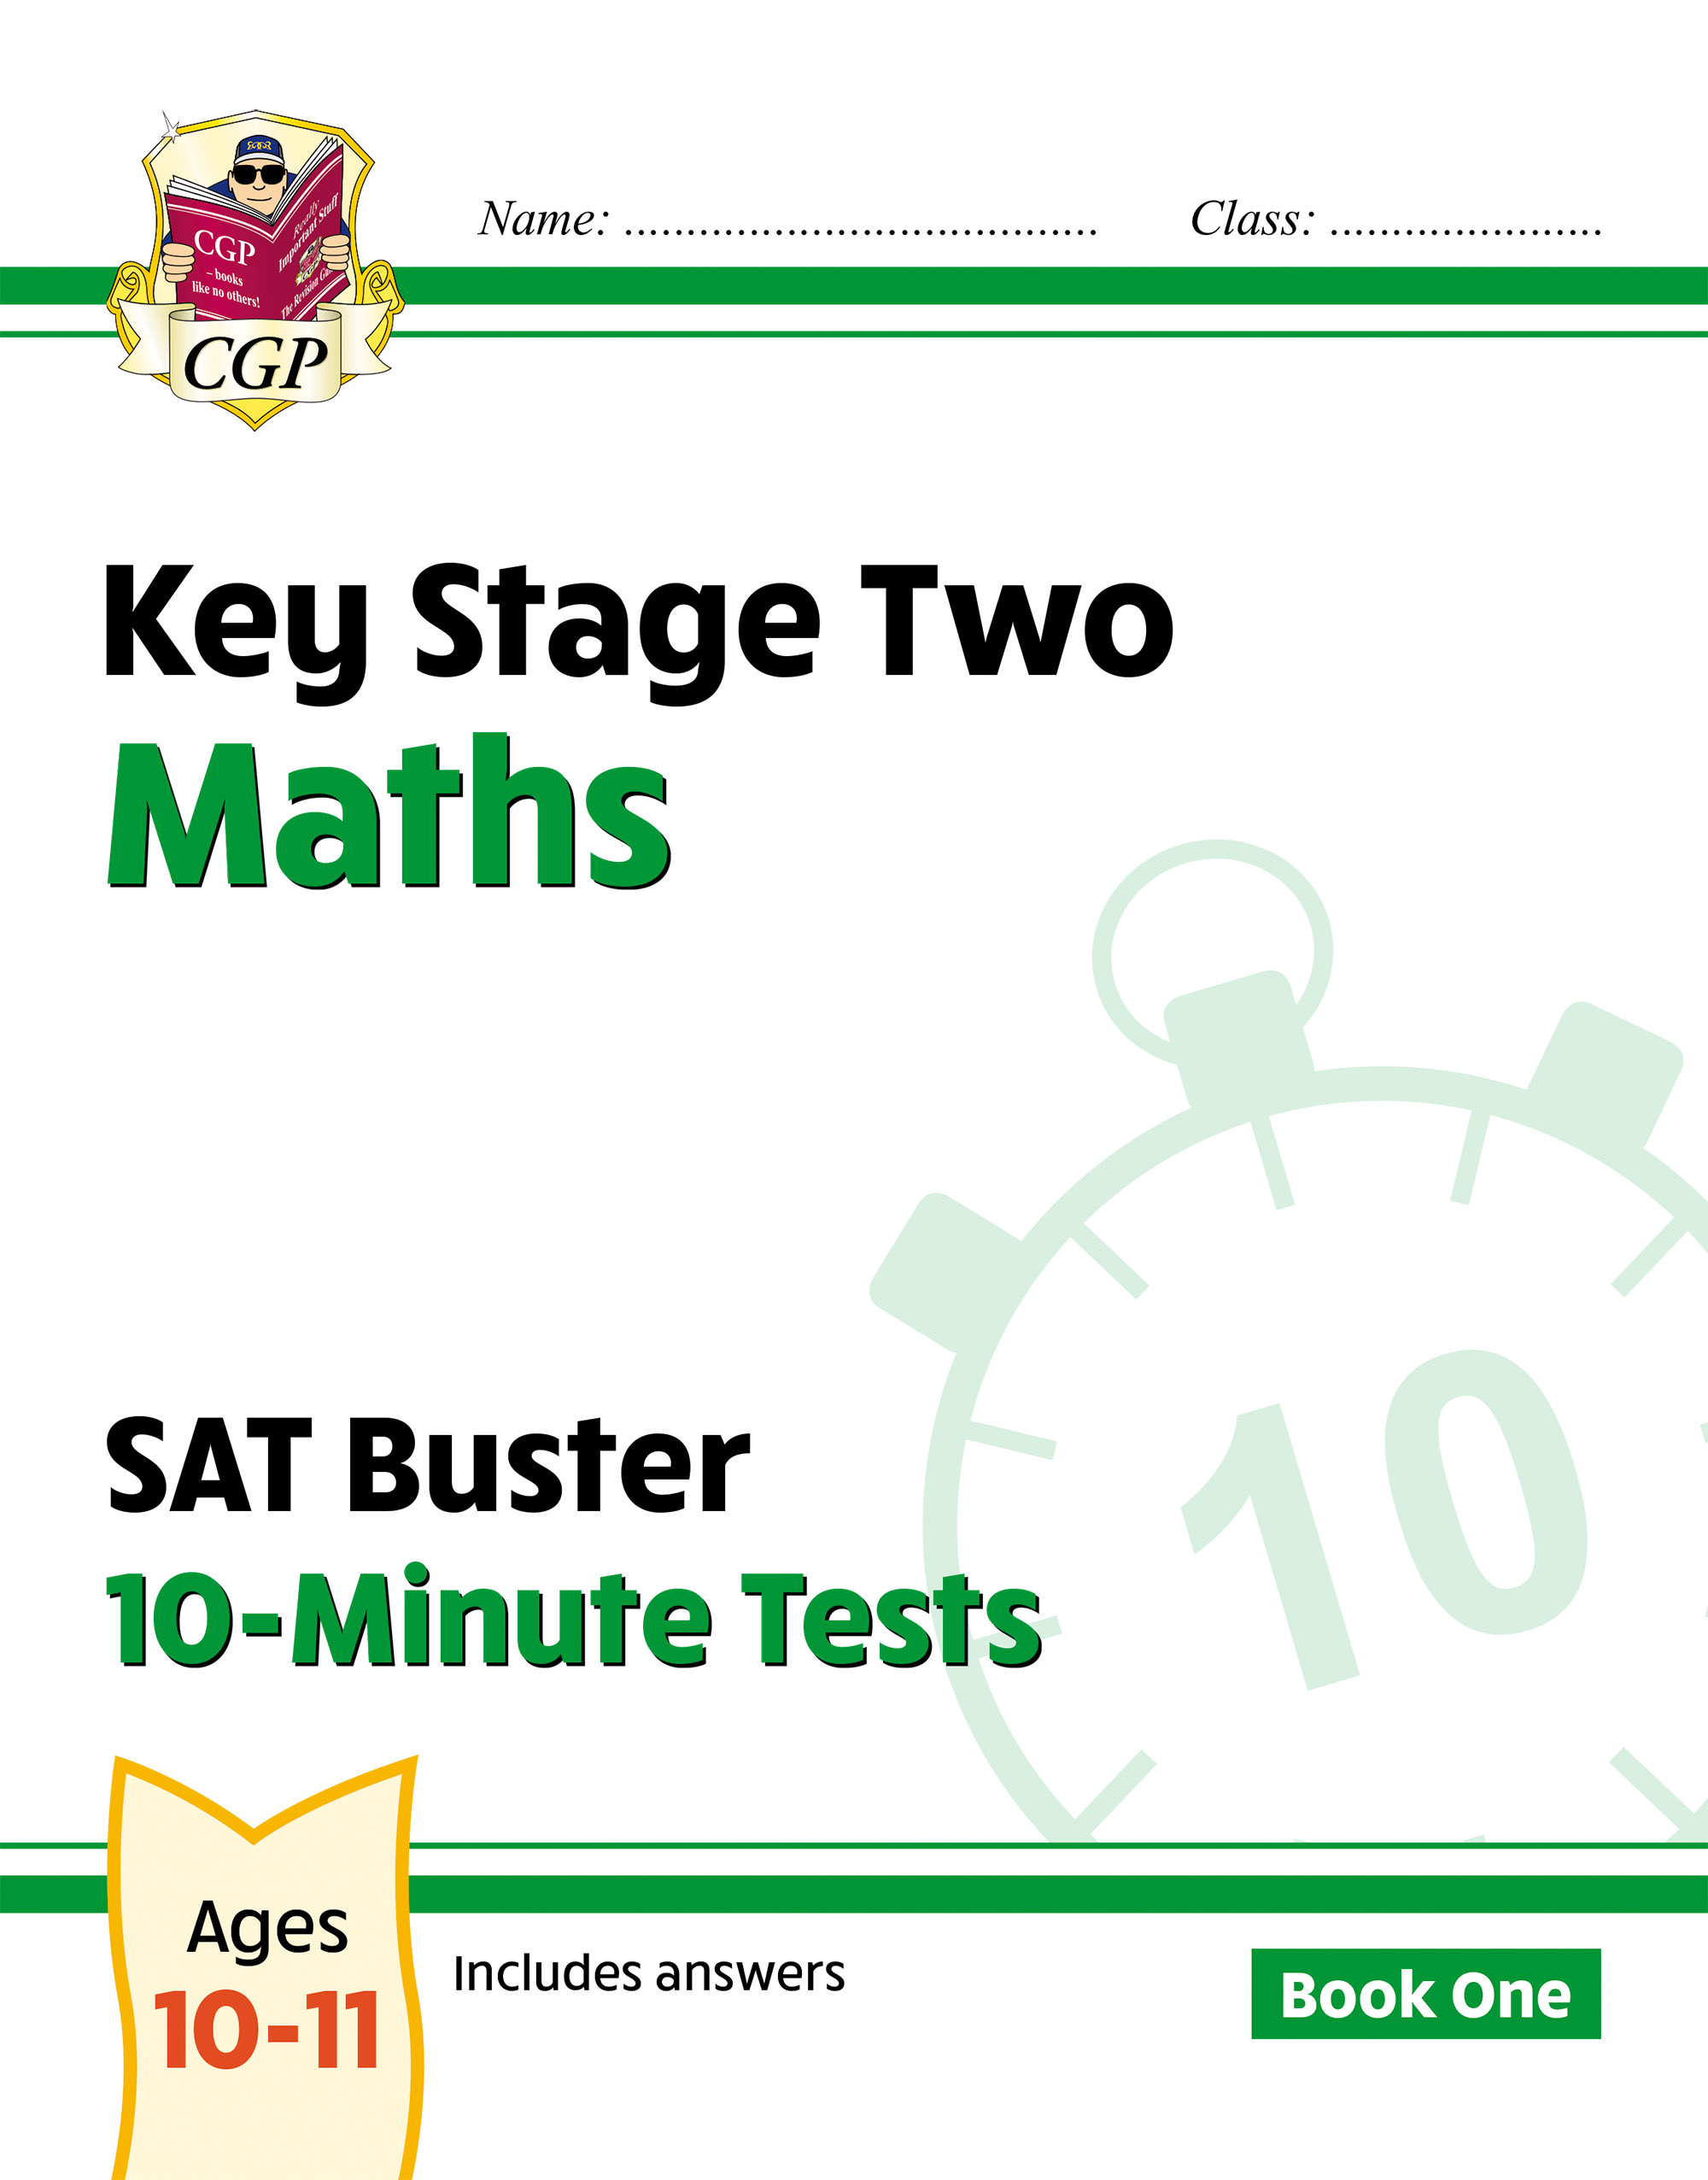 MXP23D - New KS2 Maths SAT Buster 10-Minute Tests - Book 1 (for the 2021 tests) Online Edition